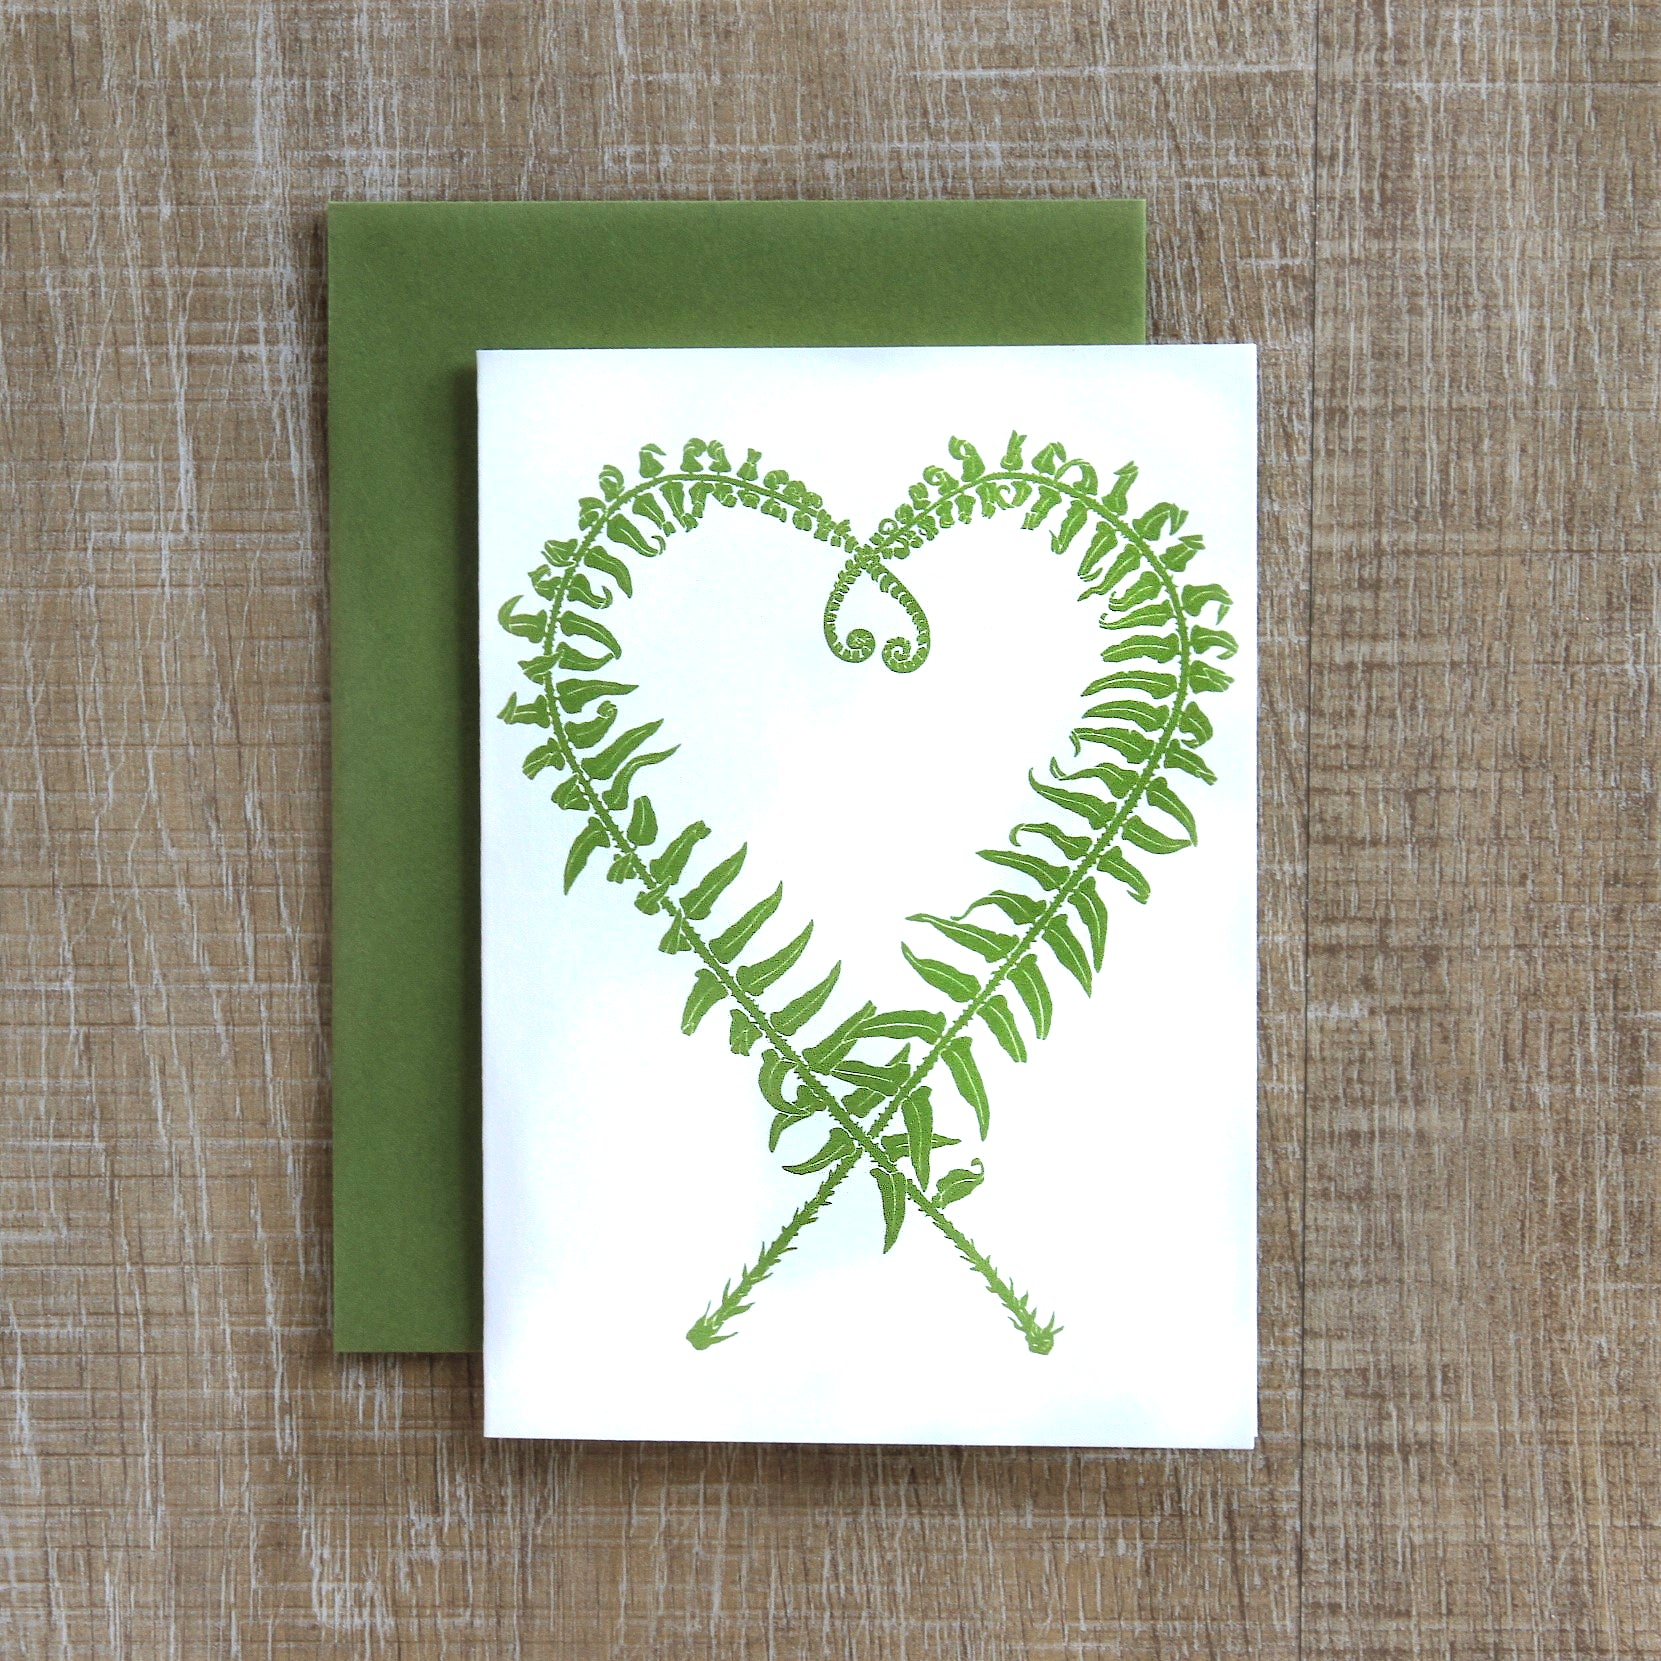 6 Sword Fern Heart Notecards in Fern